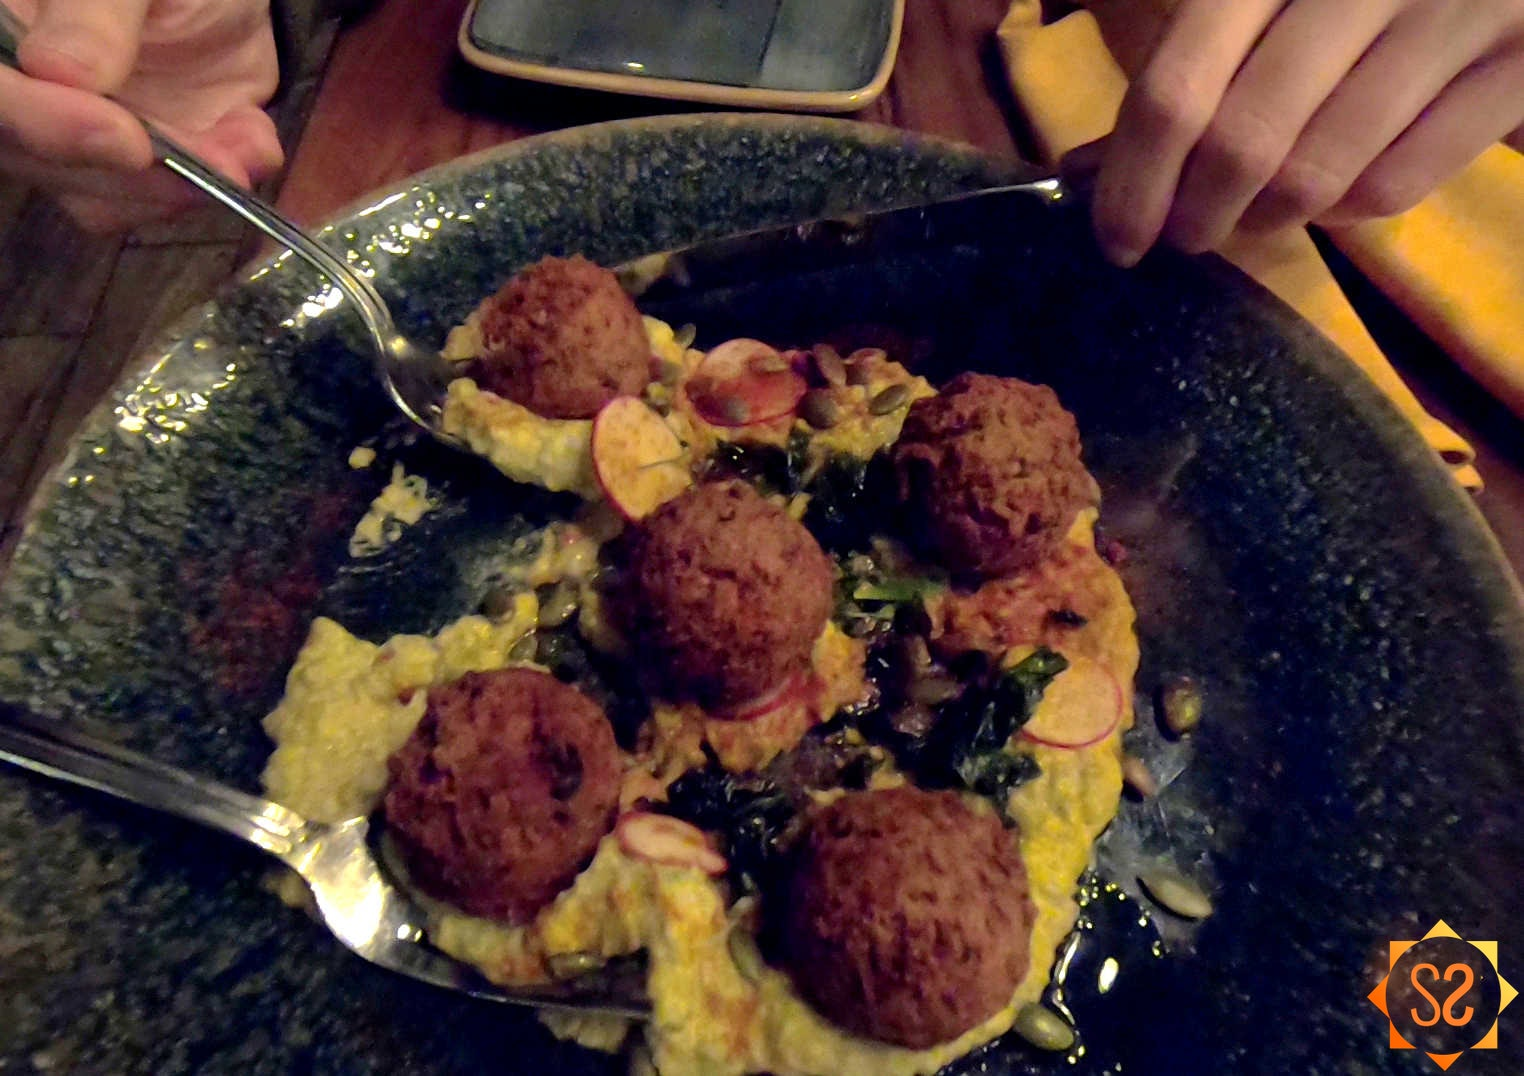 Falls Family Falafel on a plate, one piece being scooped out by a fork